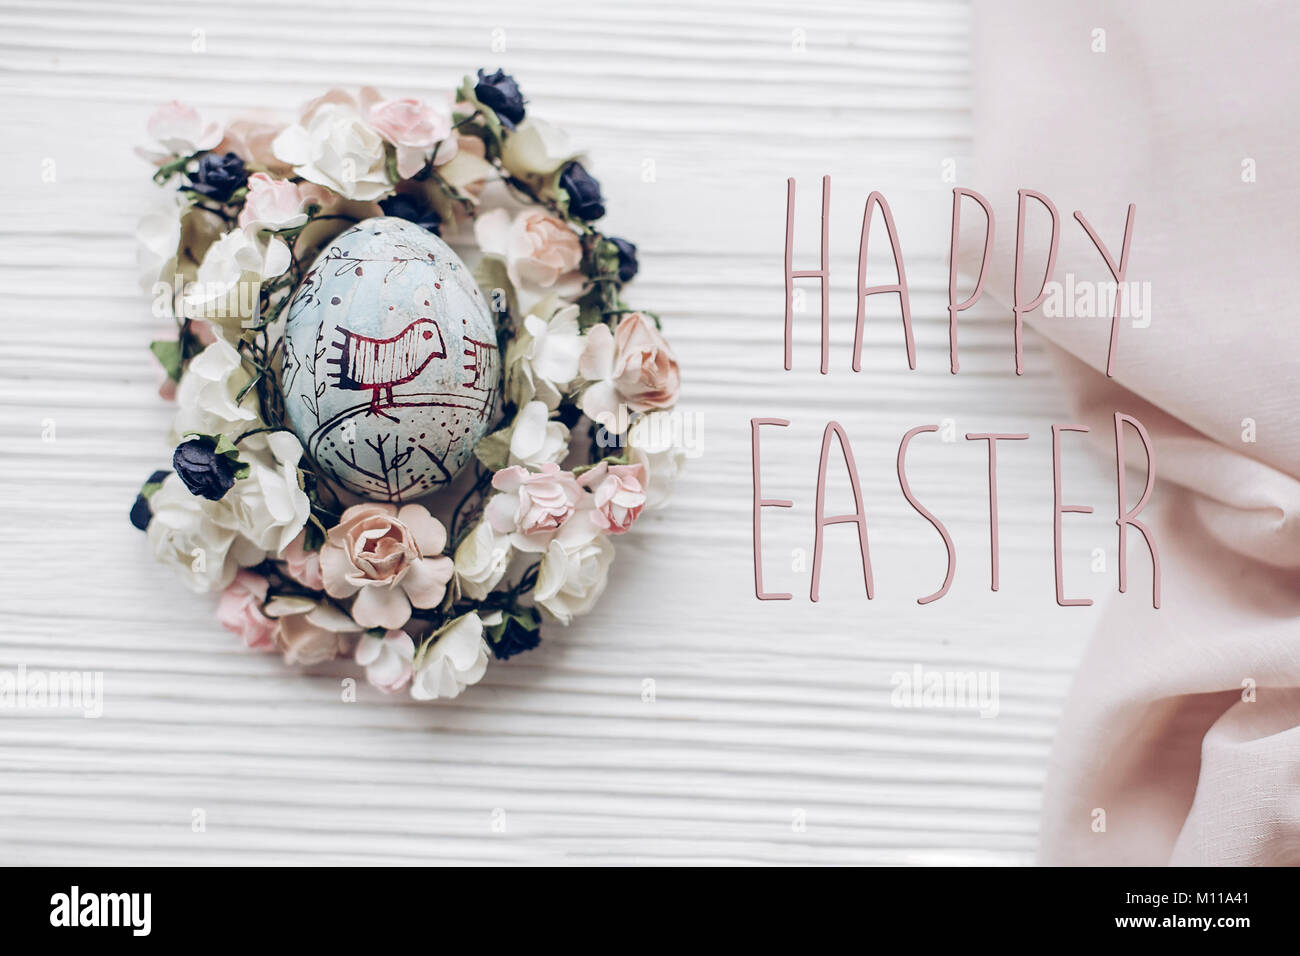 Happy Easter Text Greeting Card Sign On Easter Egg With Chick Stock